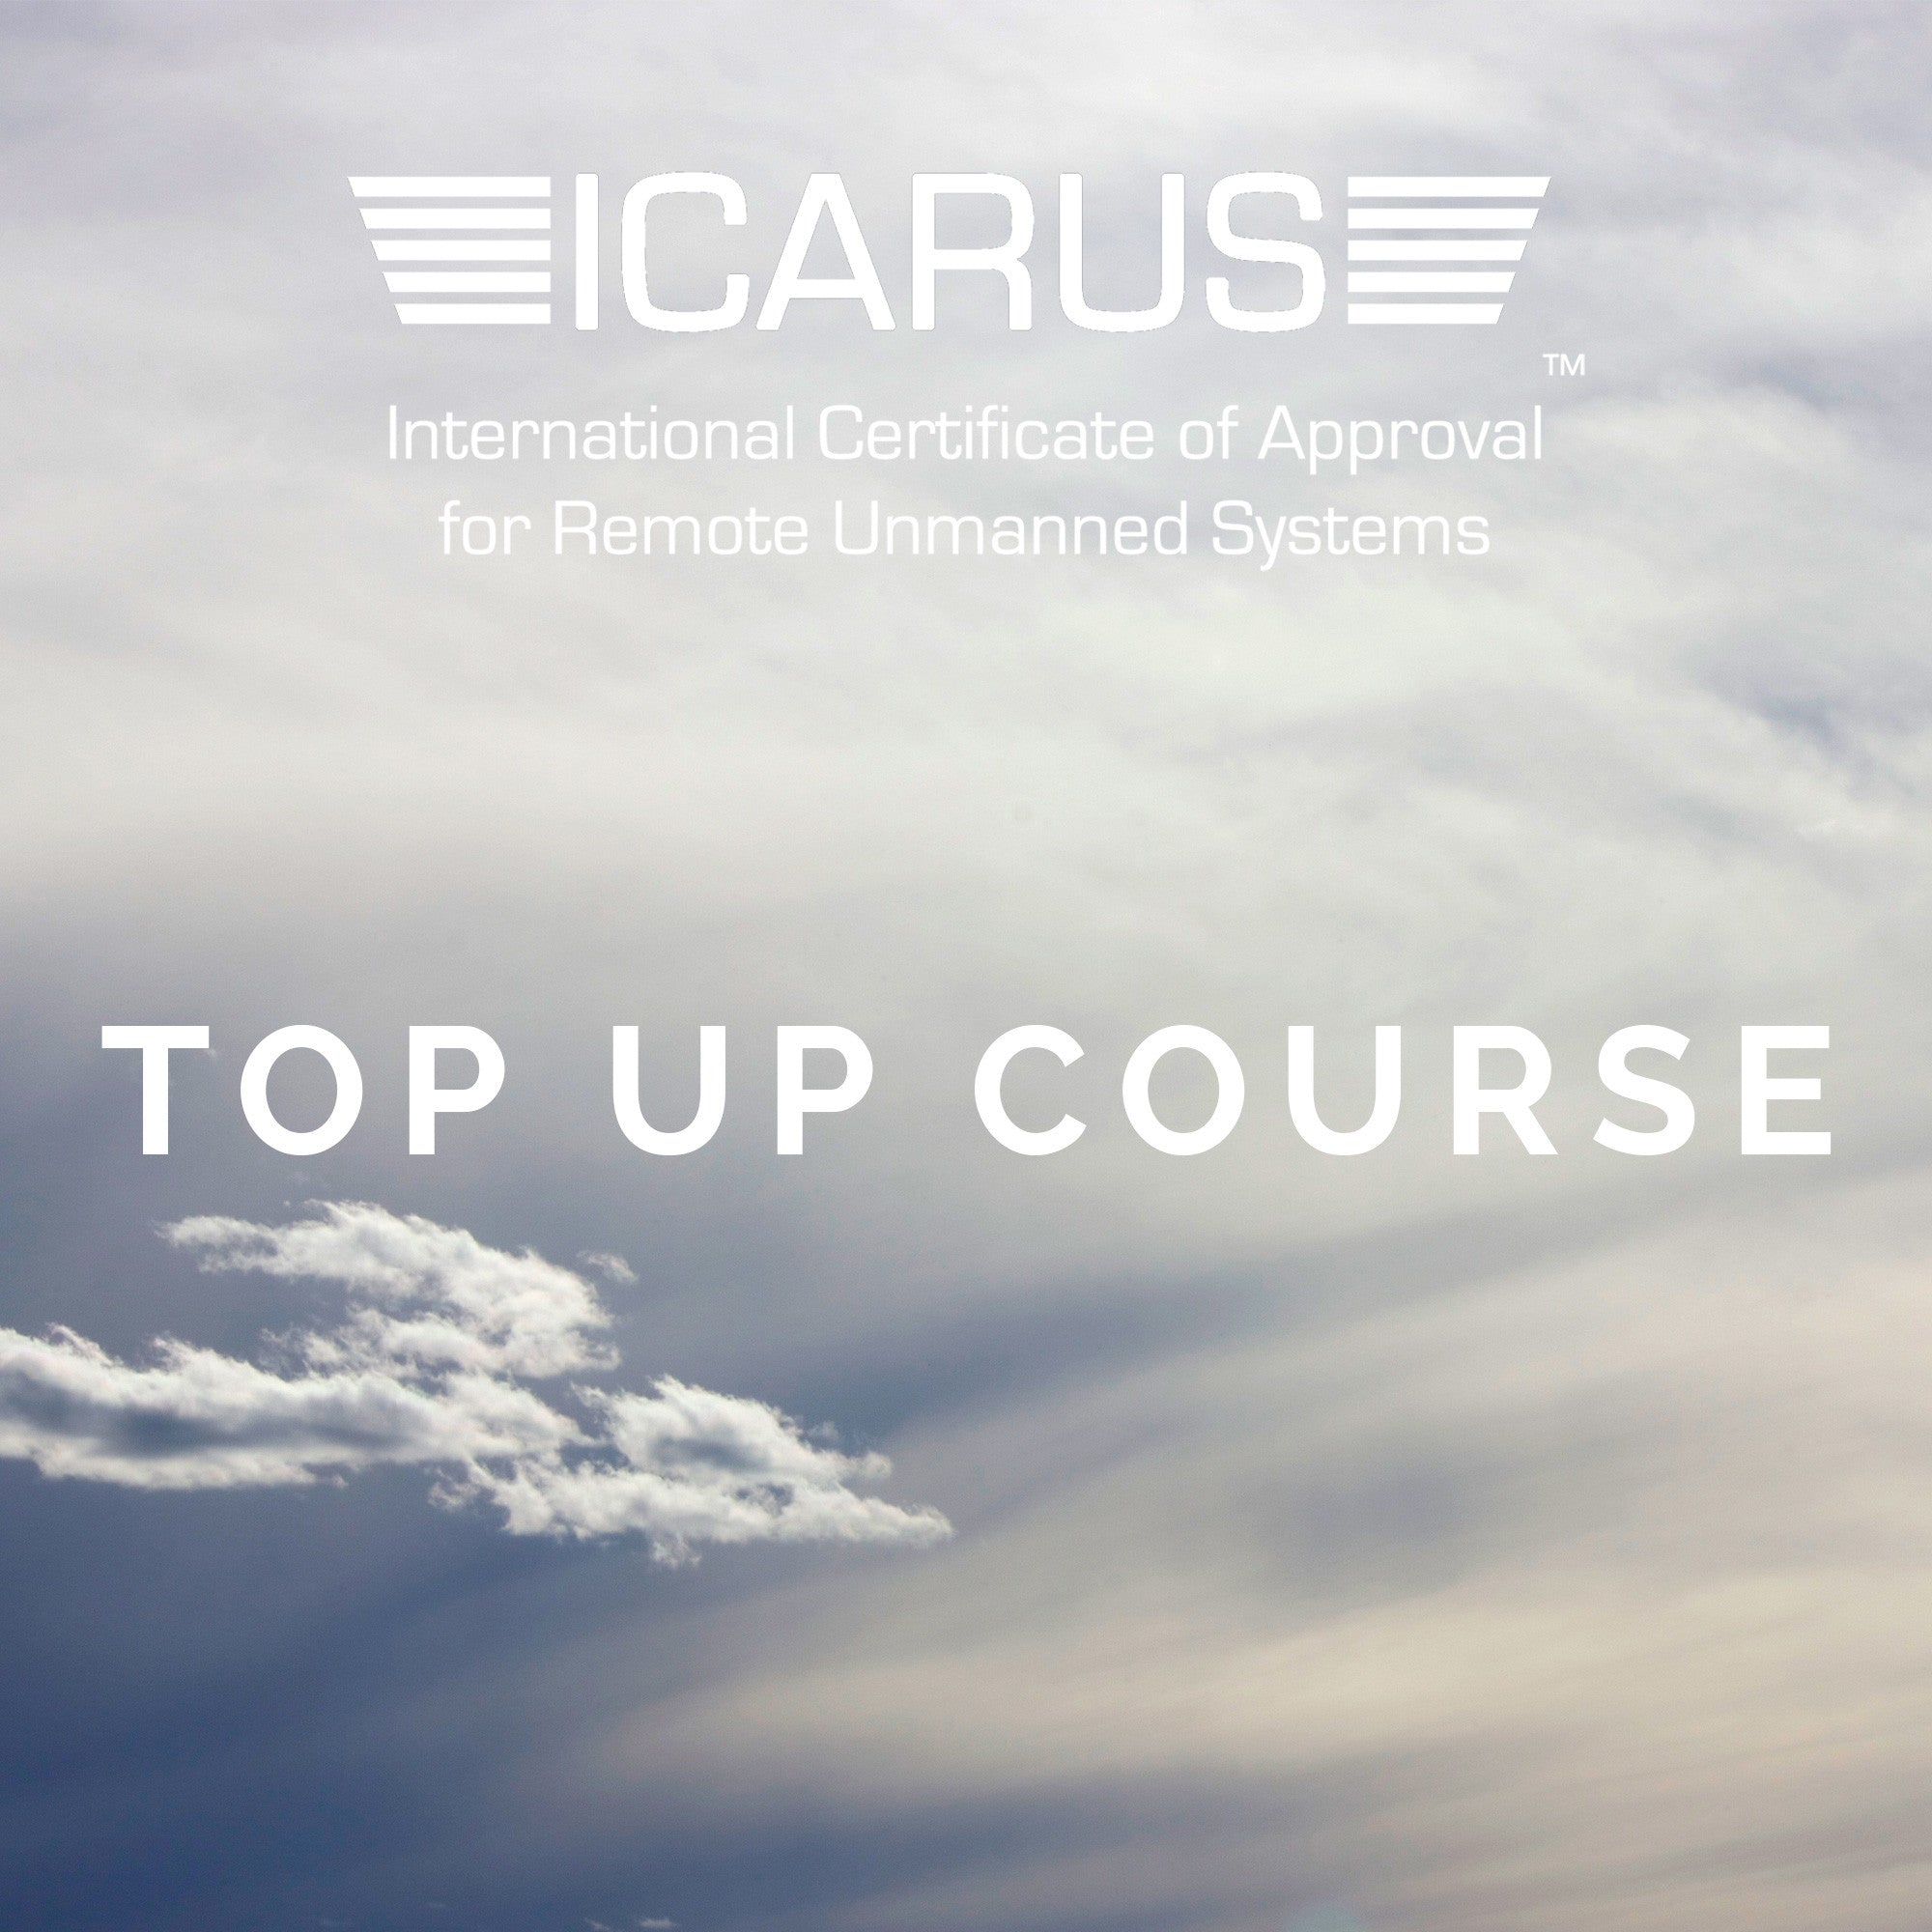 Top Up Course